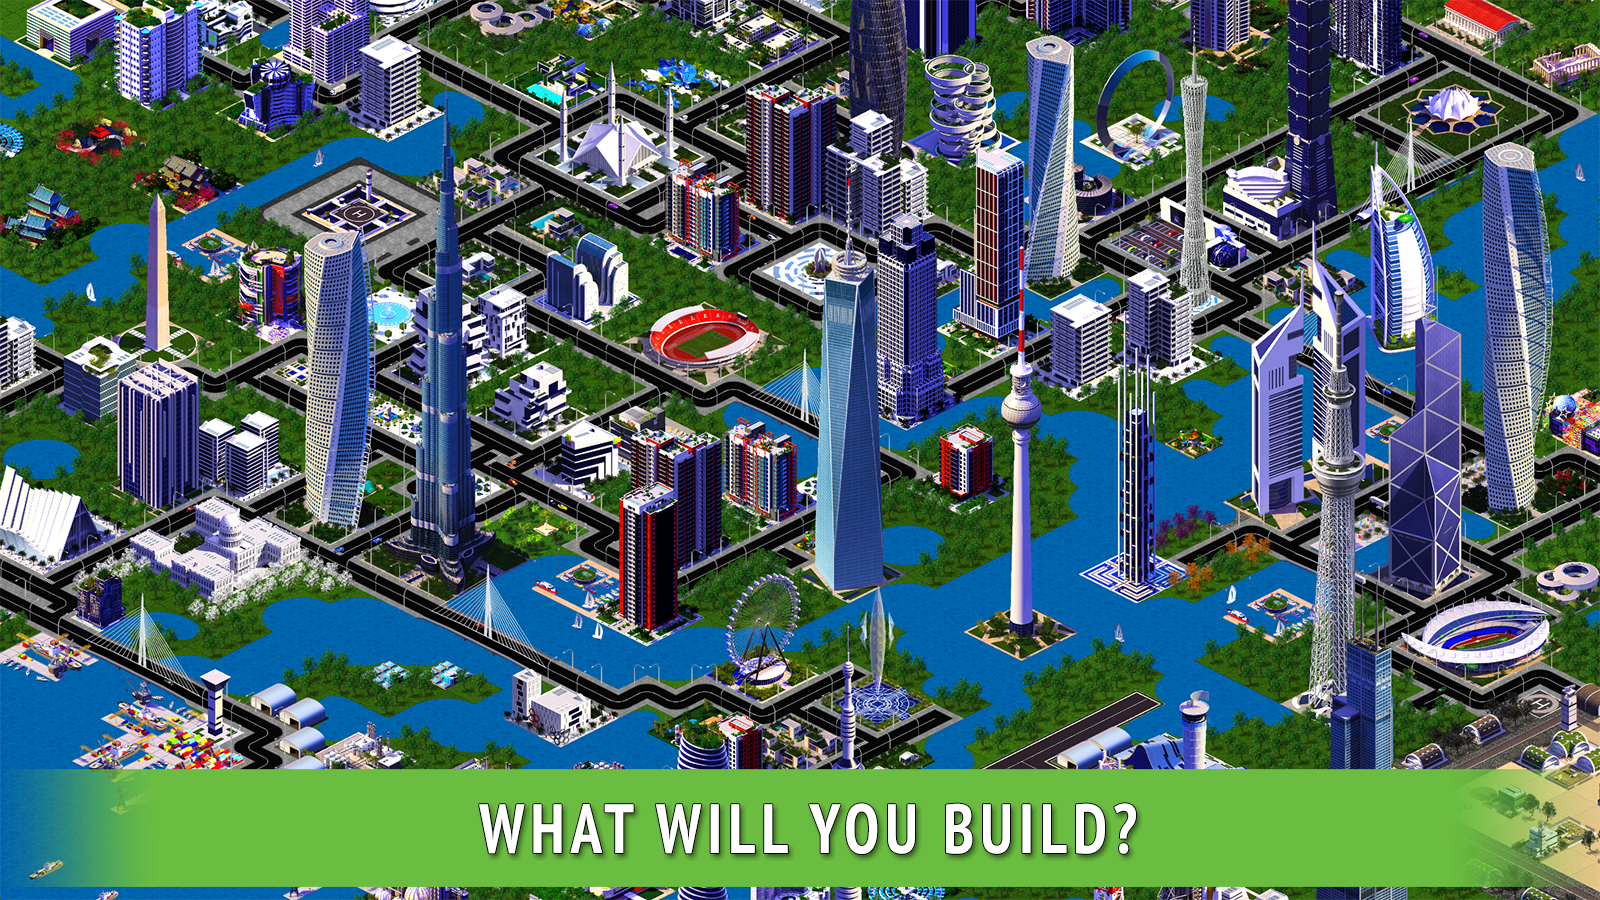 designer city building game android apps on google play designer city building game screenshot